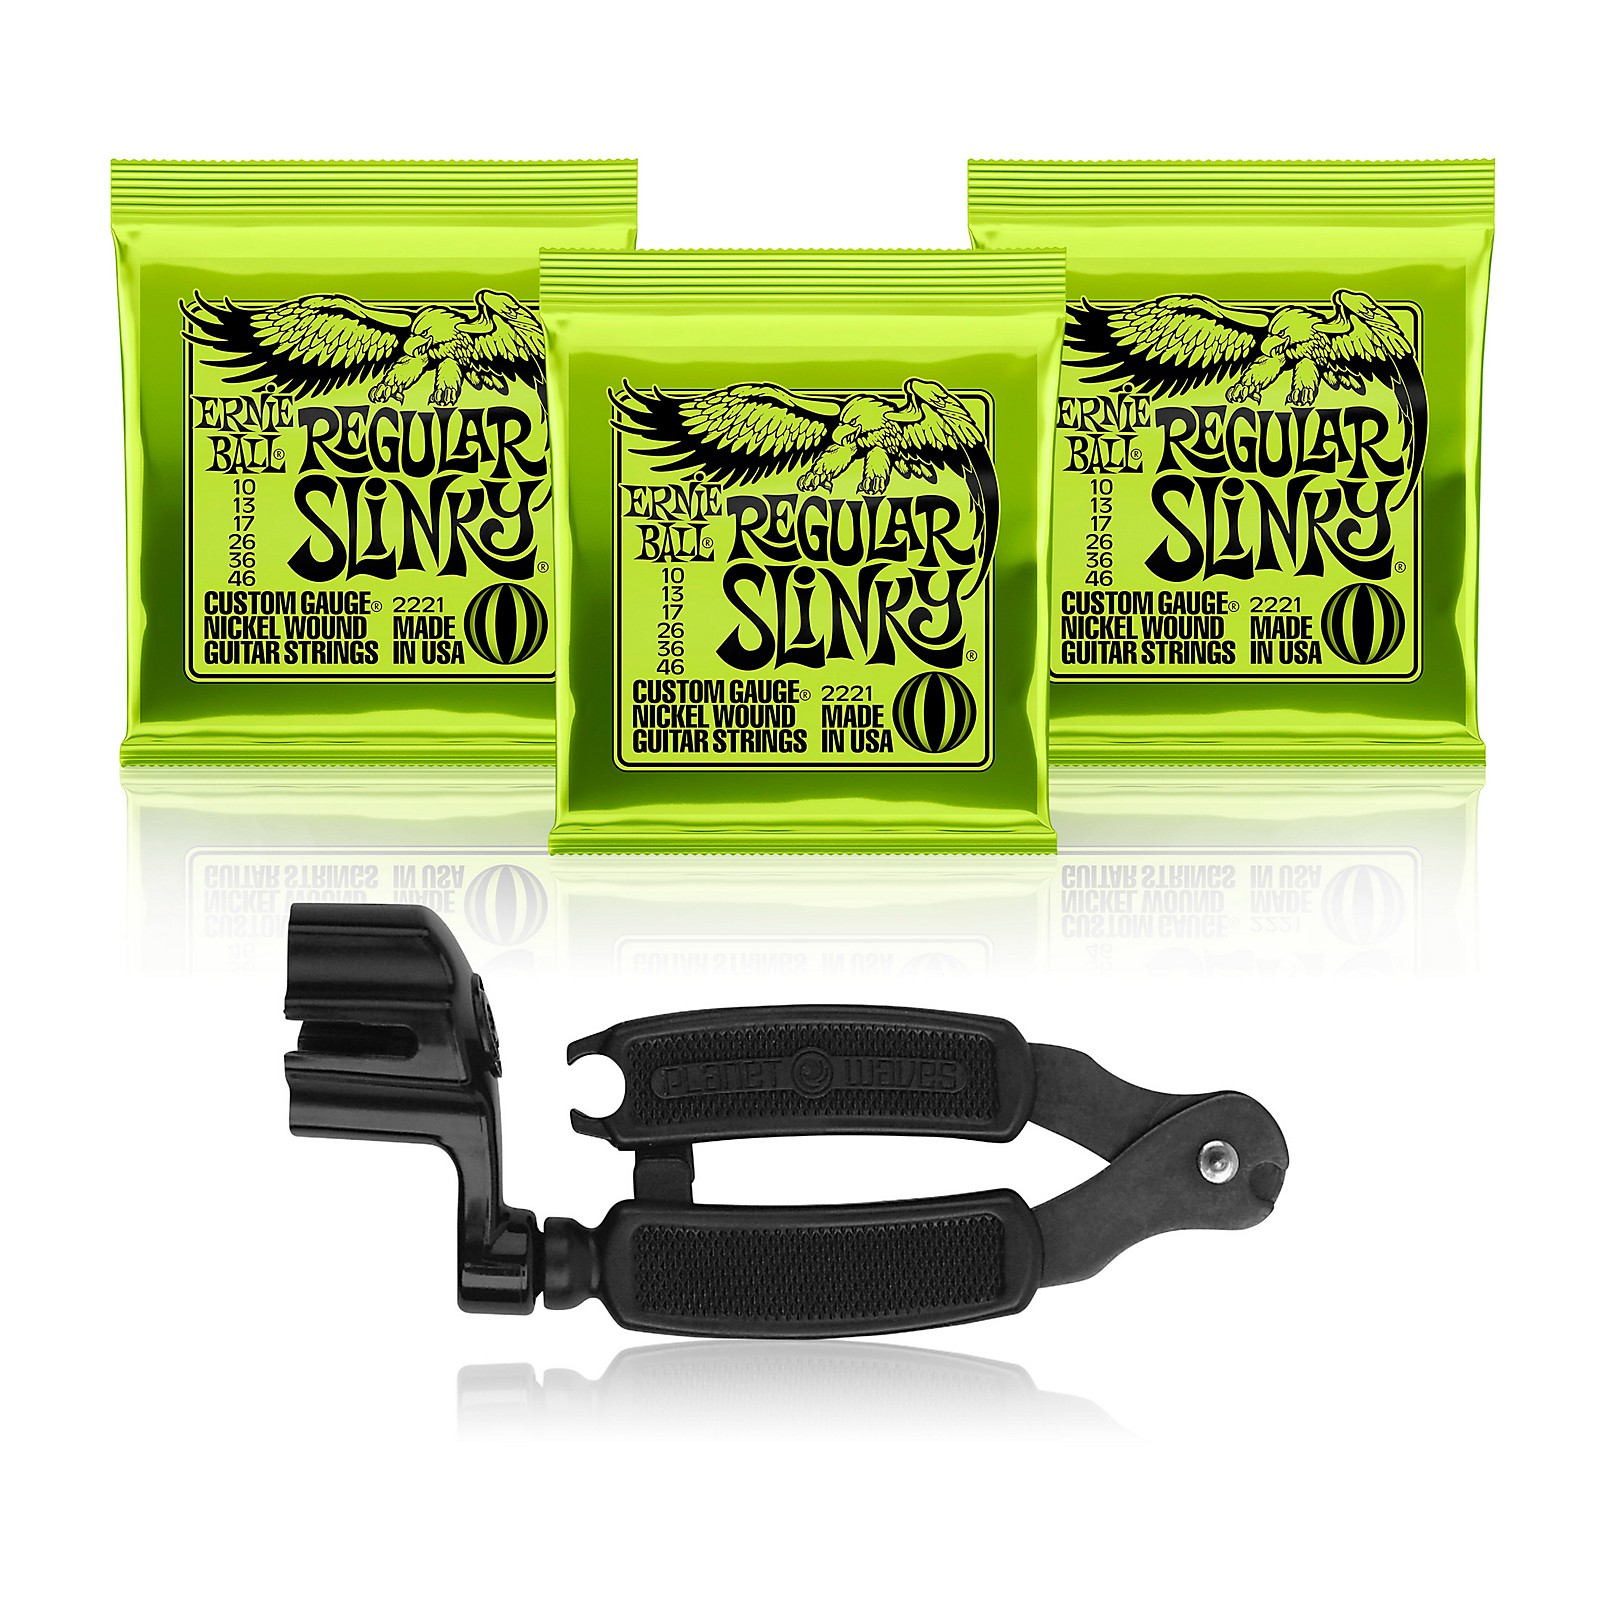 Ernie Ball 2221 Slinky Electric Guitar Strings 3-Pack with Pro-Winder String Cutter/Winder